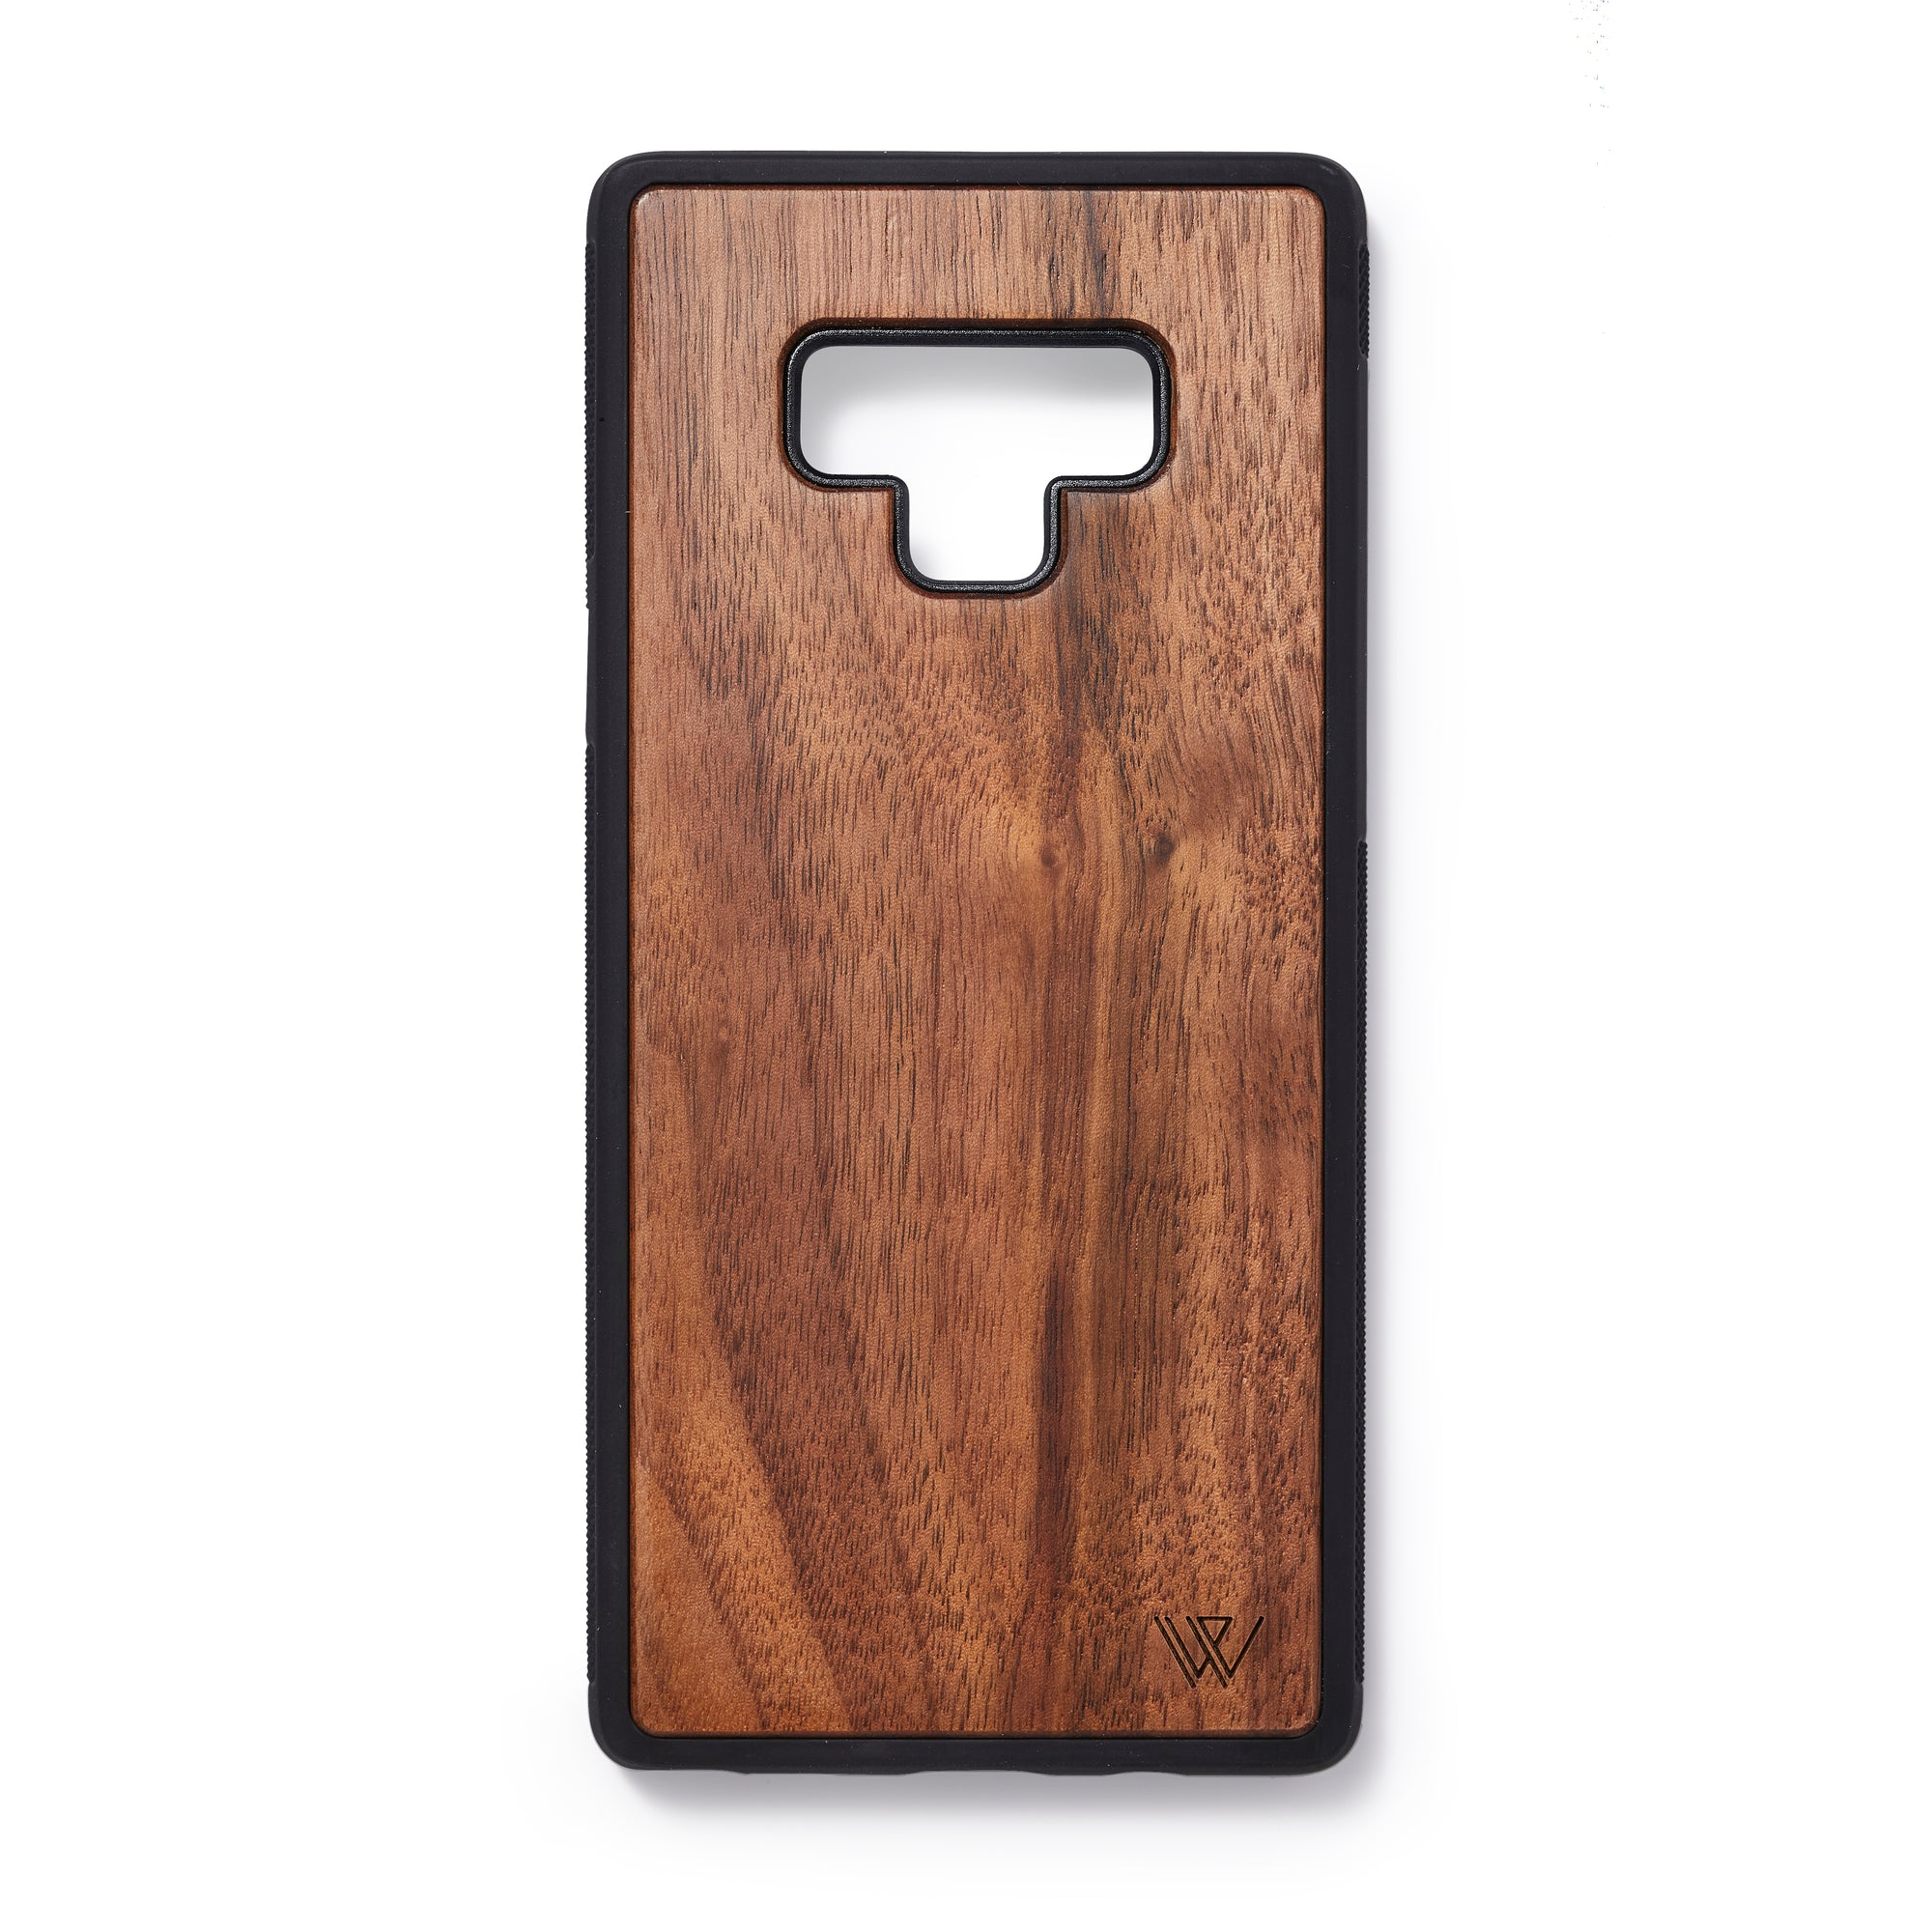 Wooden back case Samsung Note 9 walnut - Woodstylz